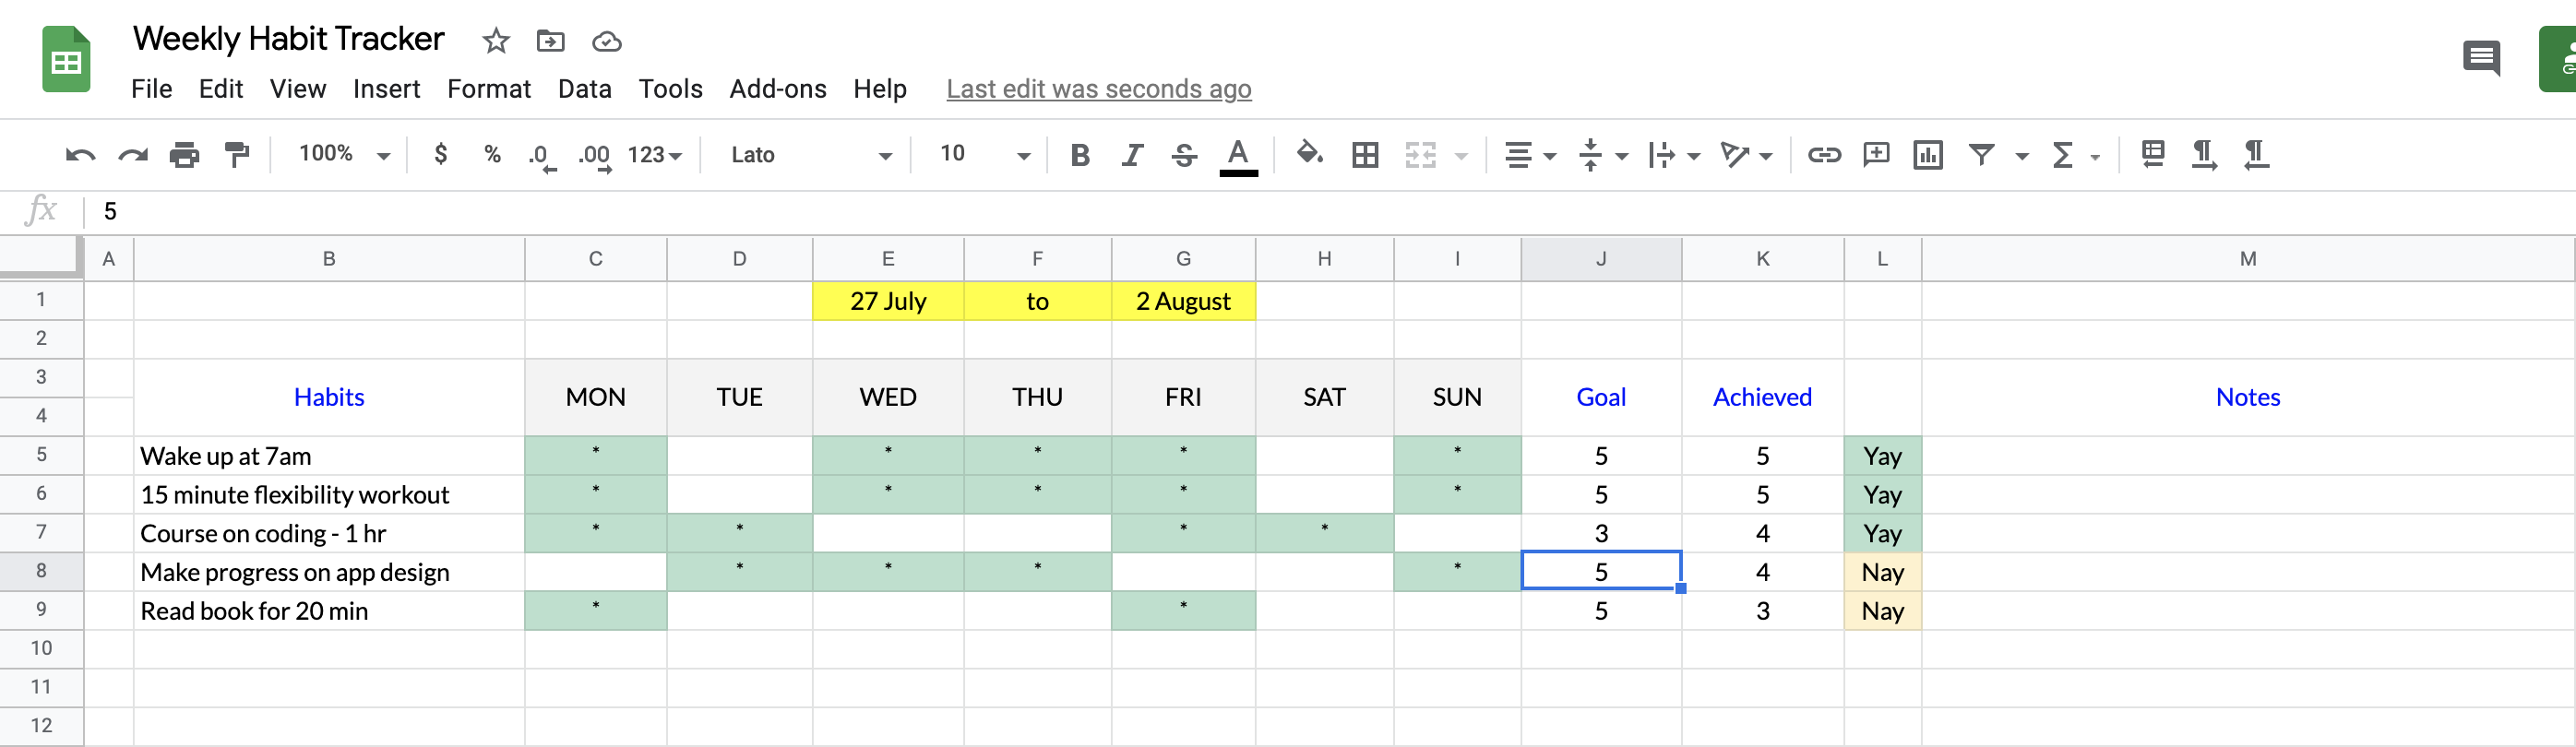 weekly habit tracker spreadsheet template